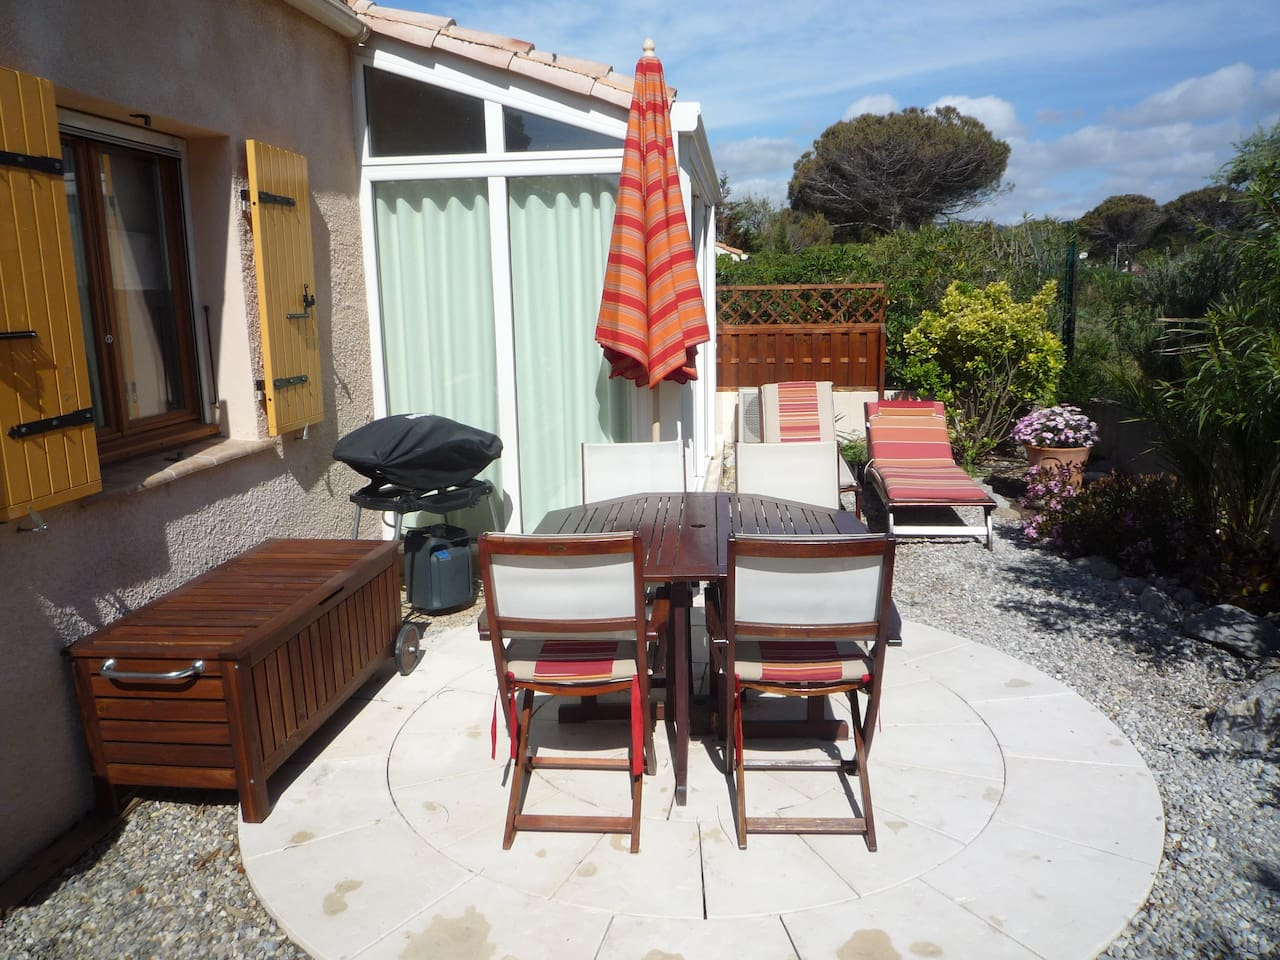 Terrace, outdoor dining space and gas bbq in the secluded back garden.